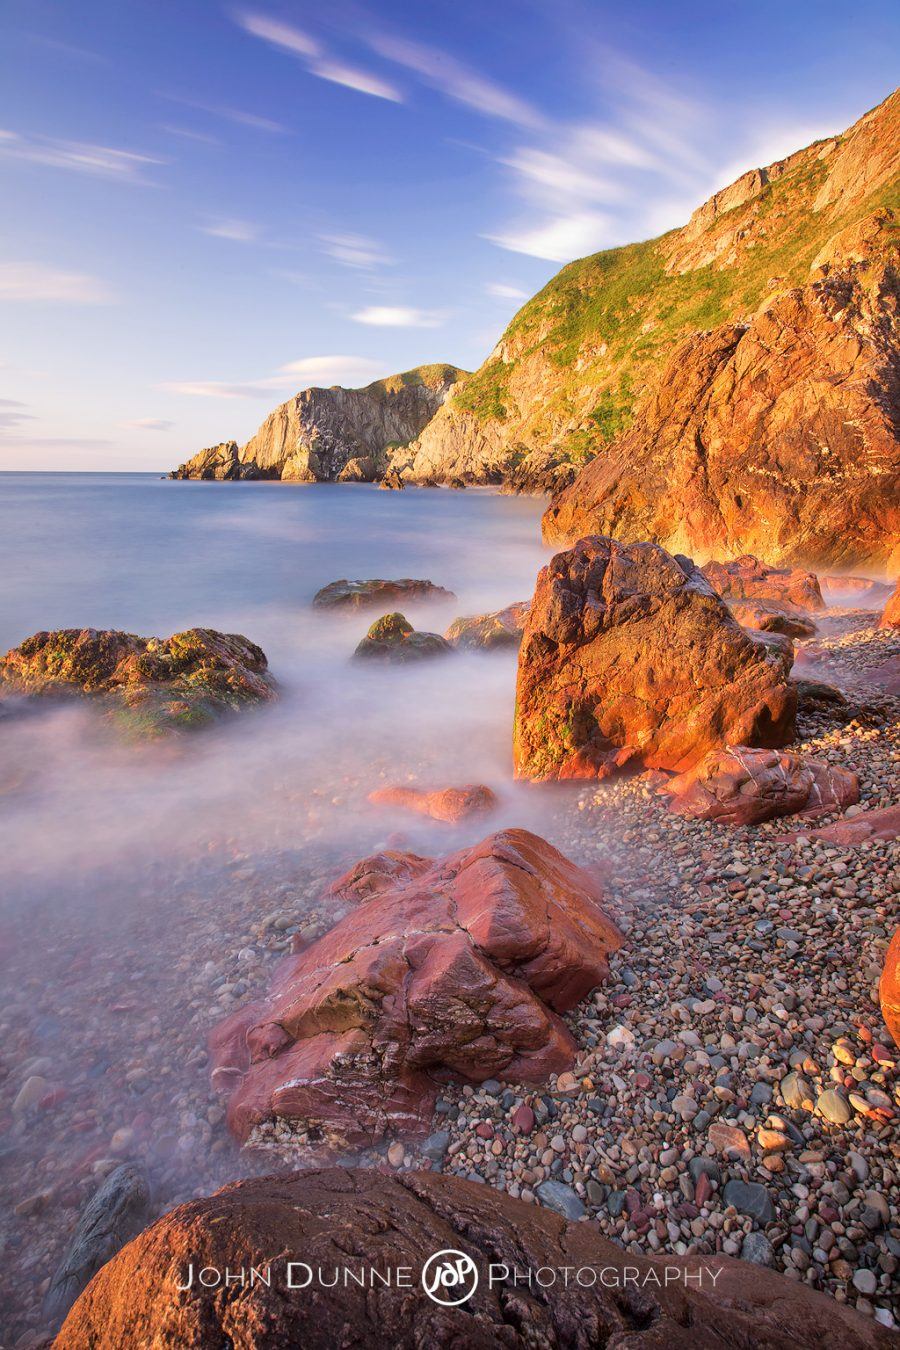 Sunrise upon the Rocks by John Dunne.